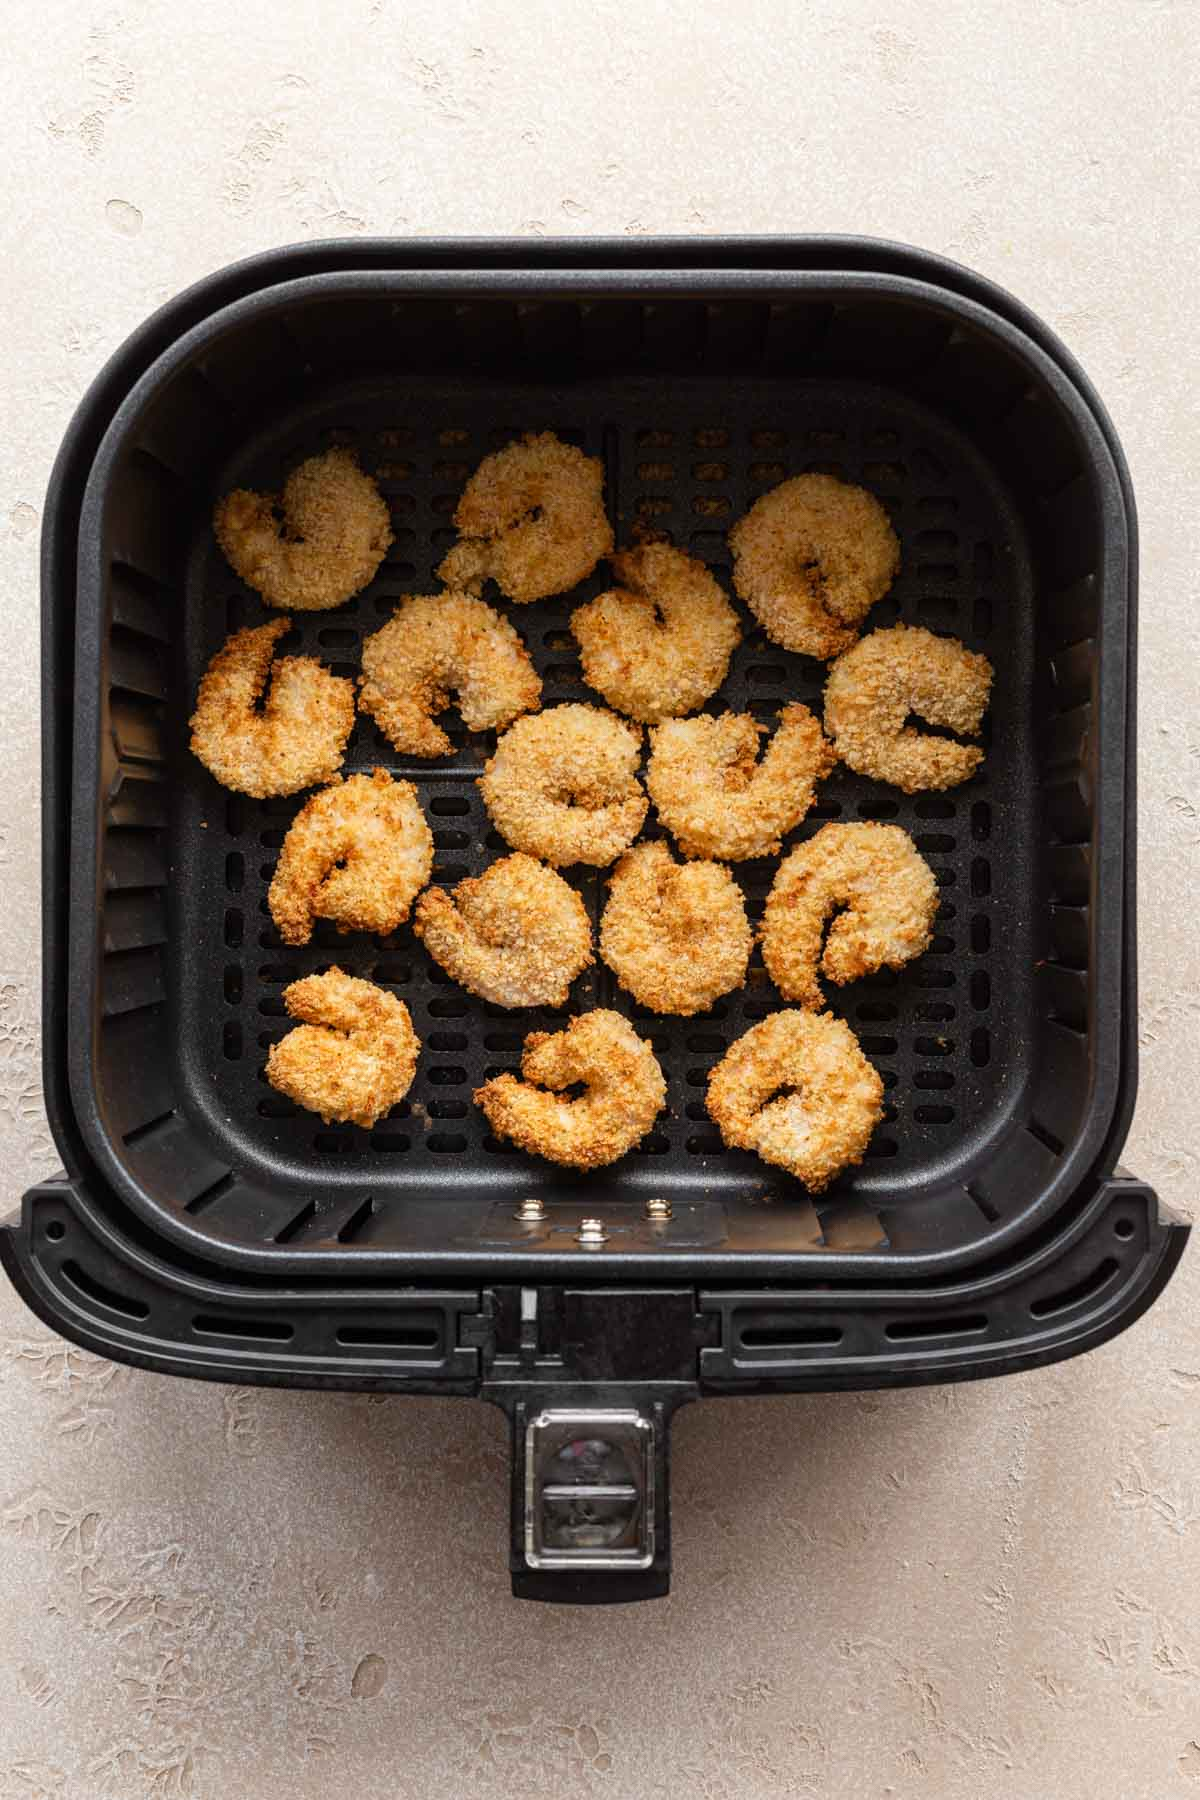 Overhead view of air fried breaded shrimp in an air fryer basket.